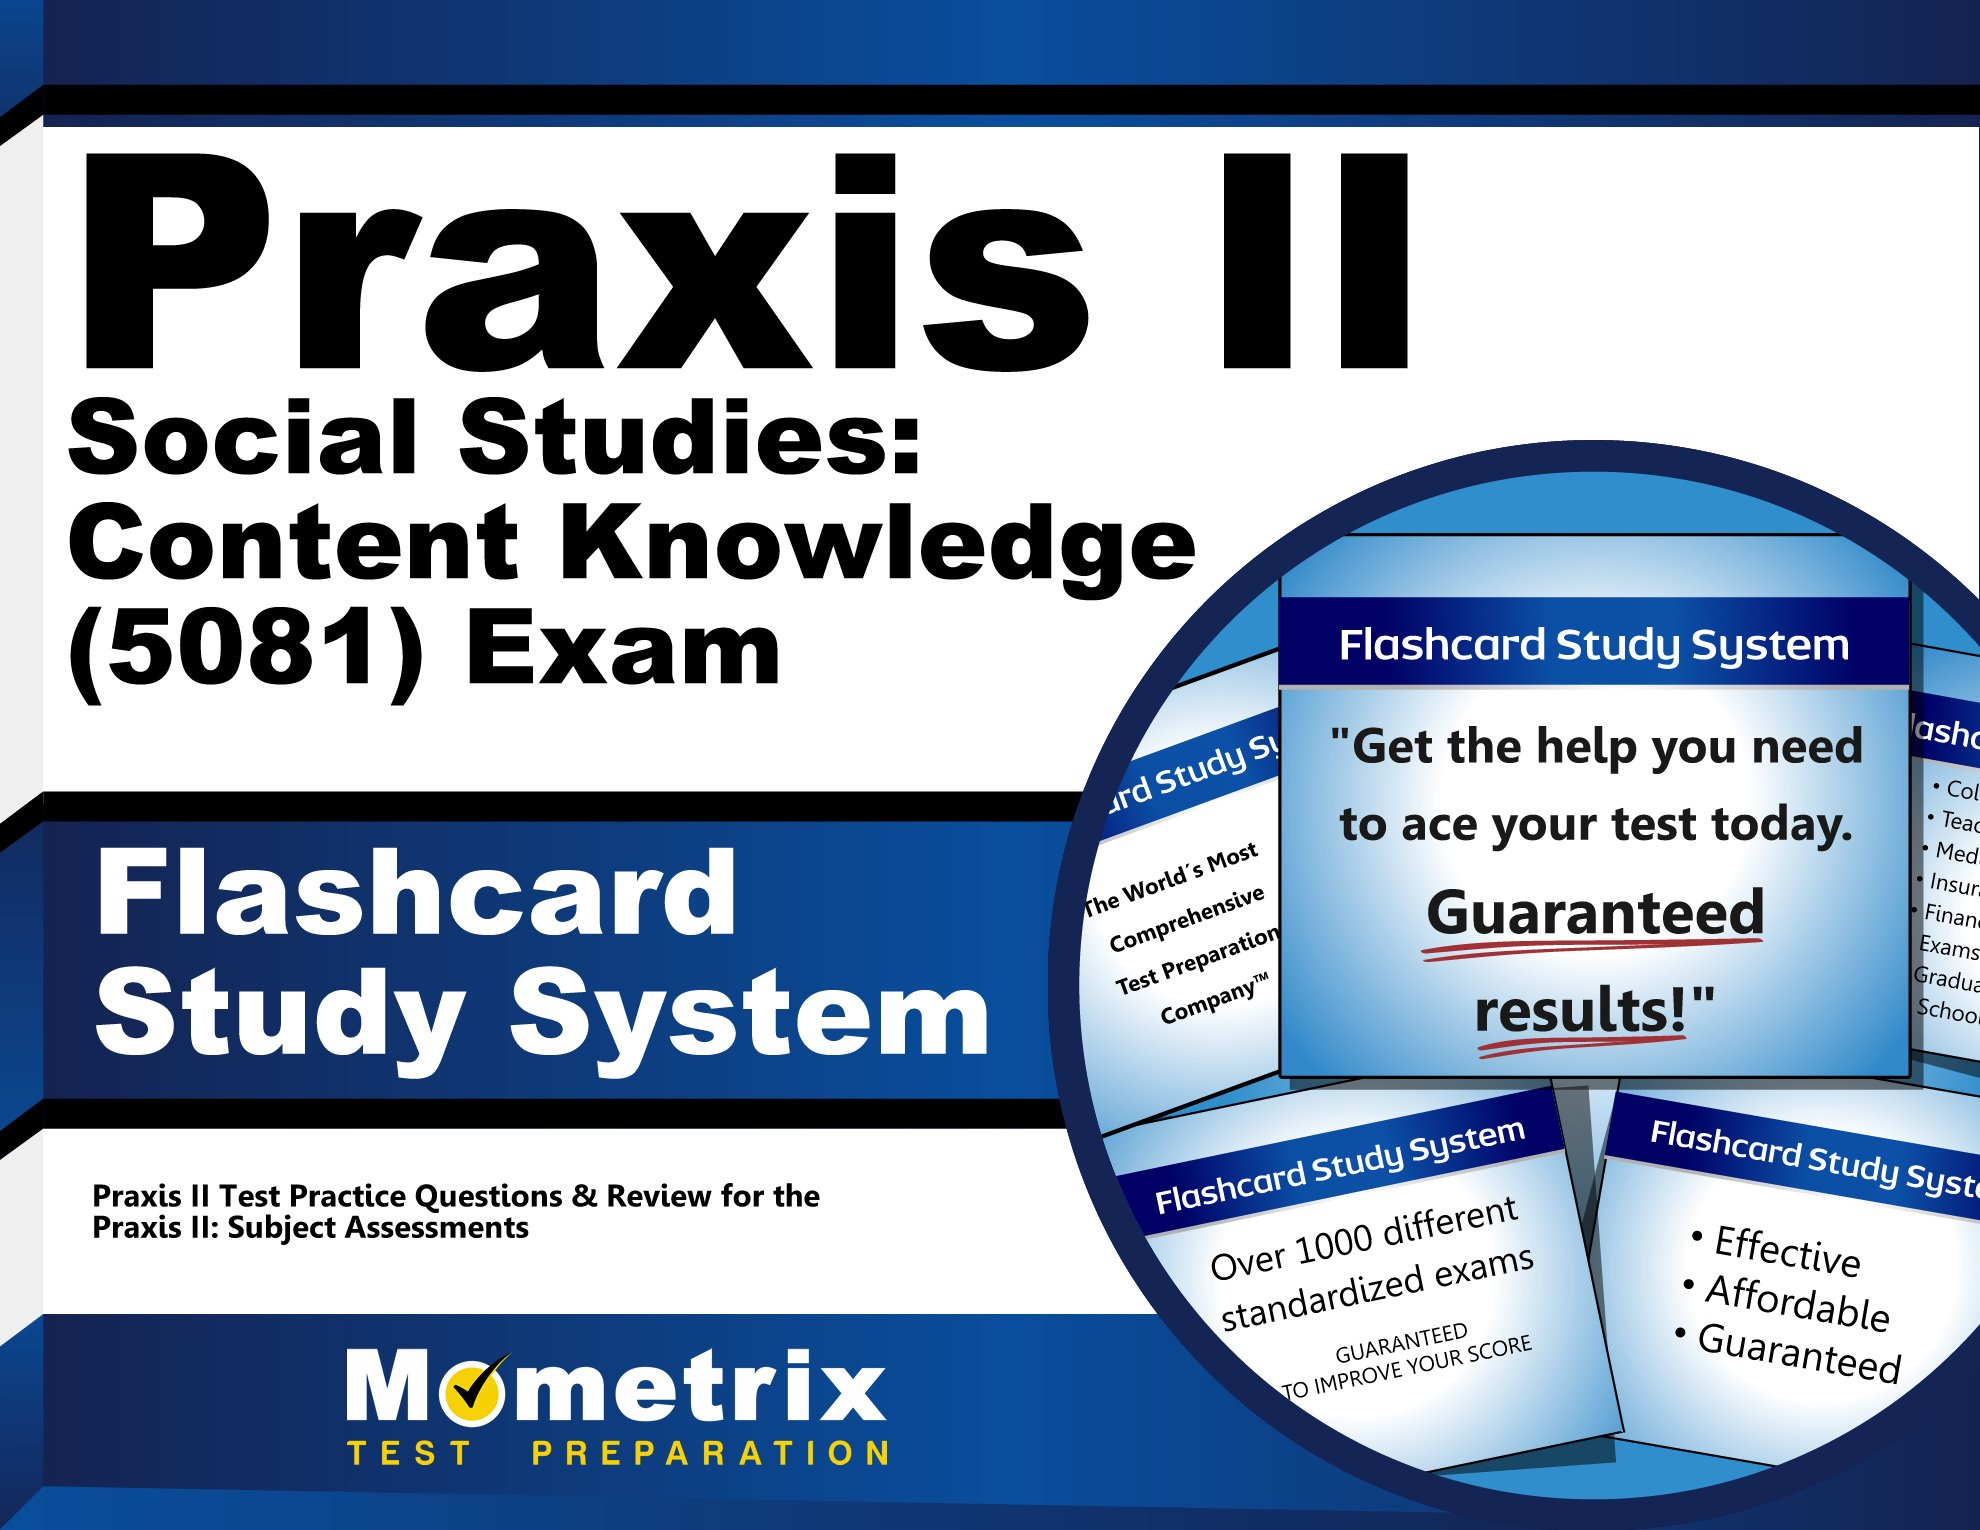 praxis ii social studies content knowledge 5081 exam flashcard praxis ii social studies content knowledge 5081 exam flashcard study system praxis ii test practice questions review for the praxis ii subject